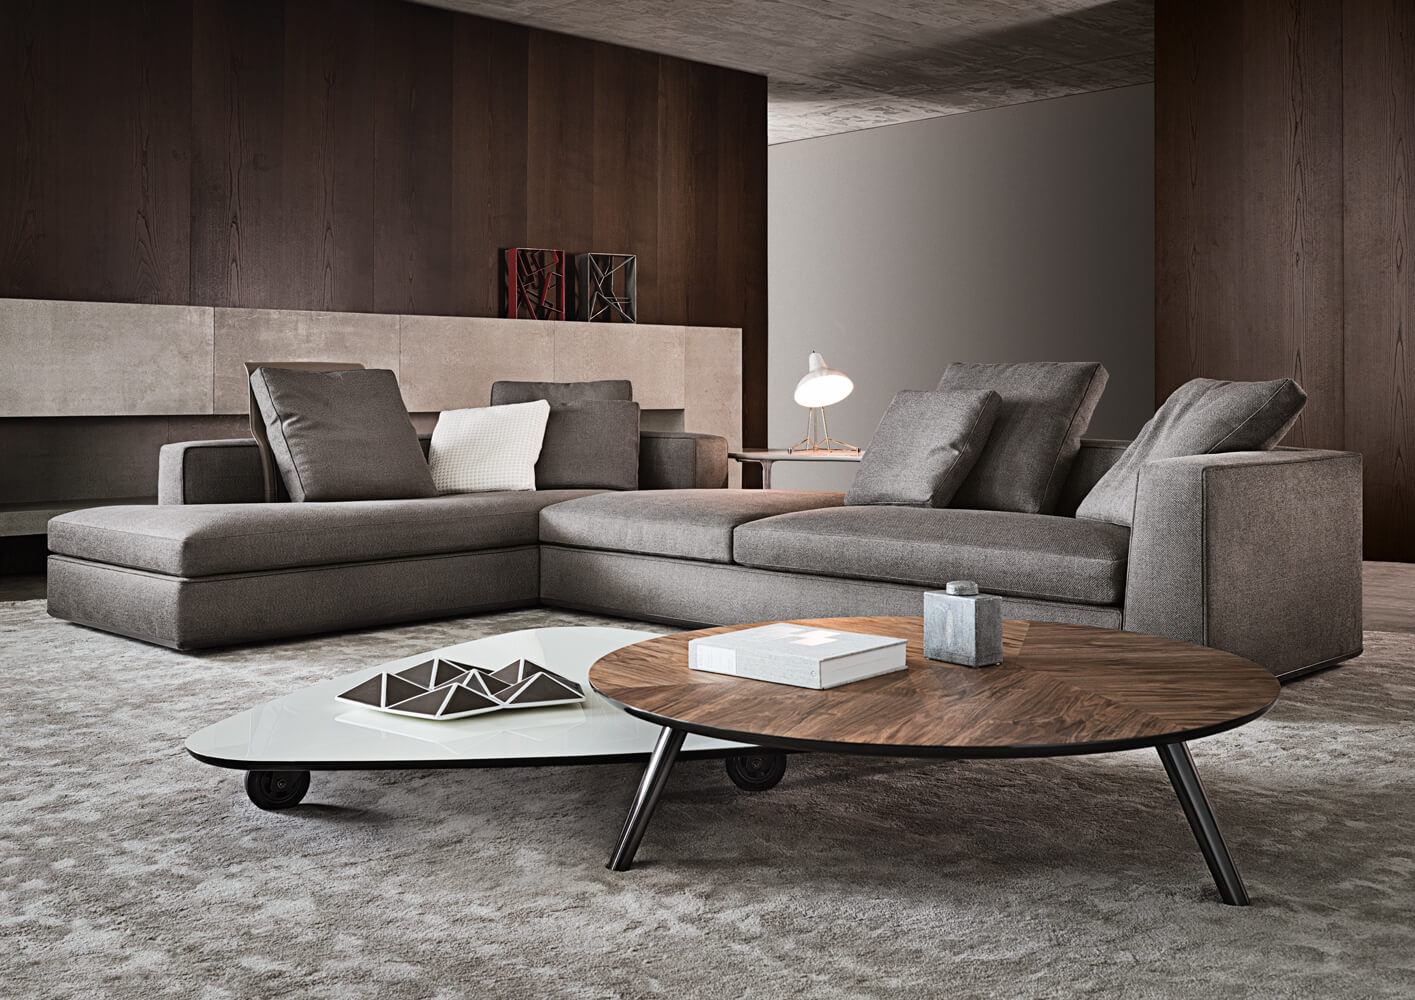 21 Stylish And Unique Sofa Designs For A Modern Home